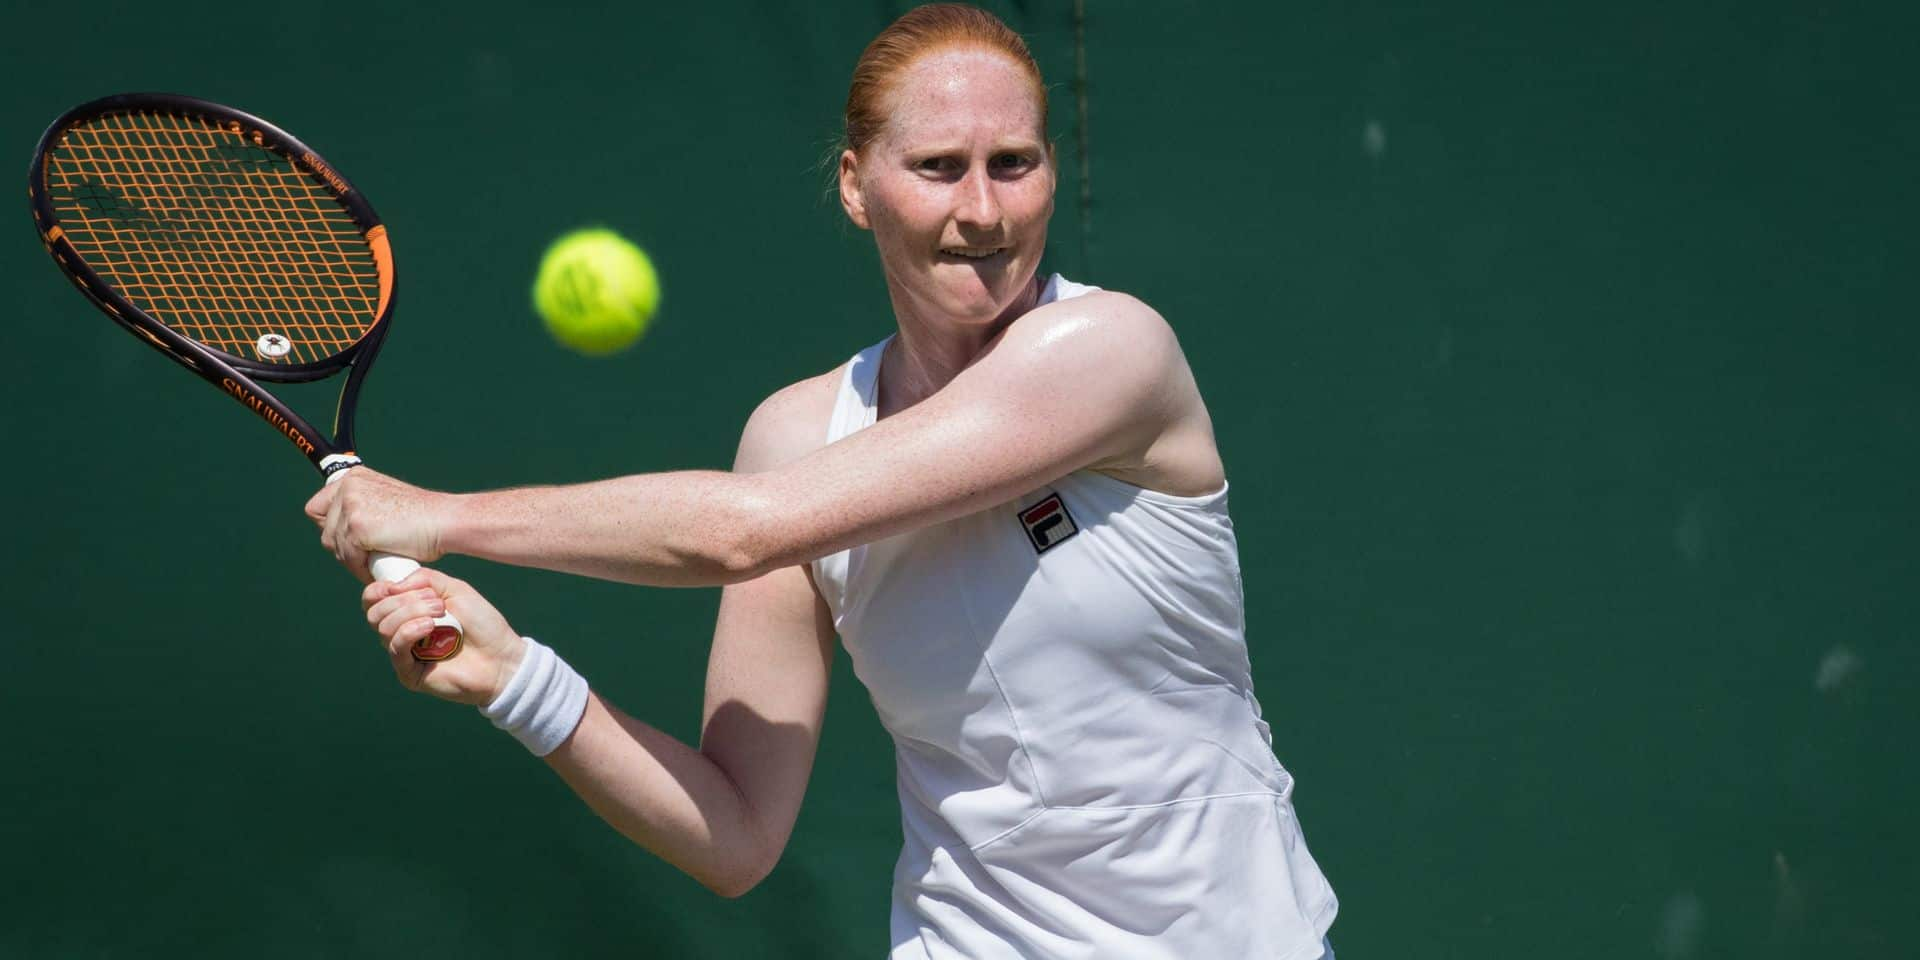 Belgian Alison Van Uytvanck pictured during the game between Australian Ashleigh Barty (WTA 1) and Belgian Alison Van Uytvanck (WTA 58) in the women's singles second round at the 2019 Wimbledon grand slam tennis tournament at the All England Tennis Club, in south-west London, Britain, Thursday 04 July 2019. BELGA PHOTO BENOIT DOPPAGNE